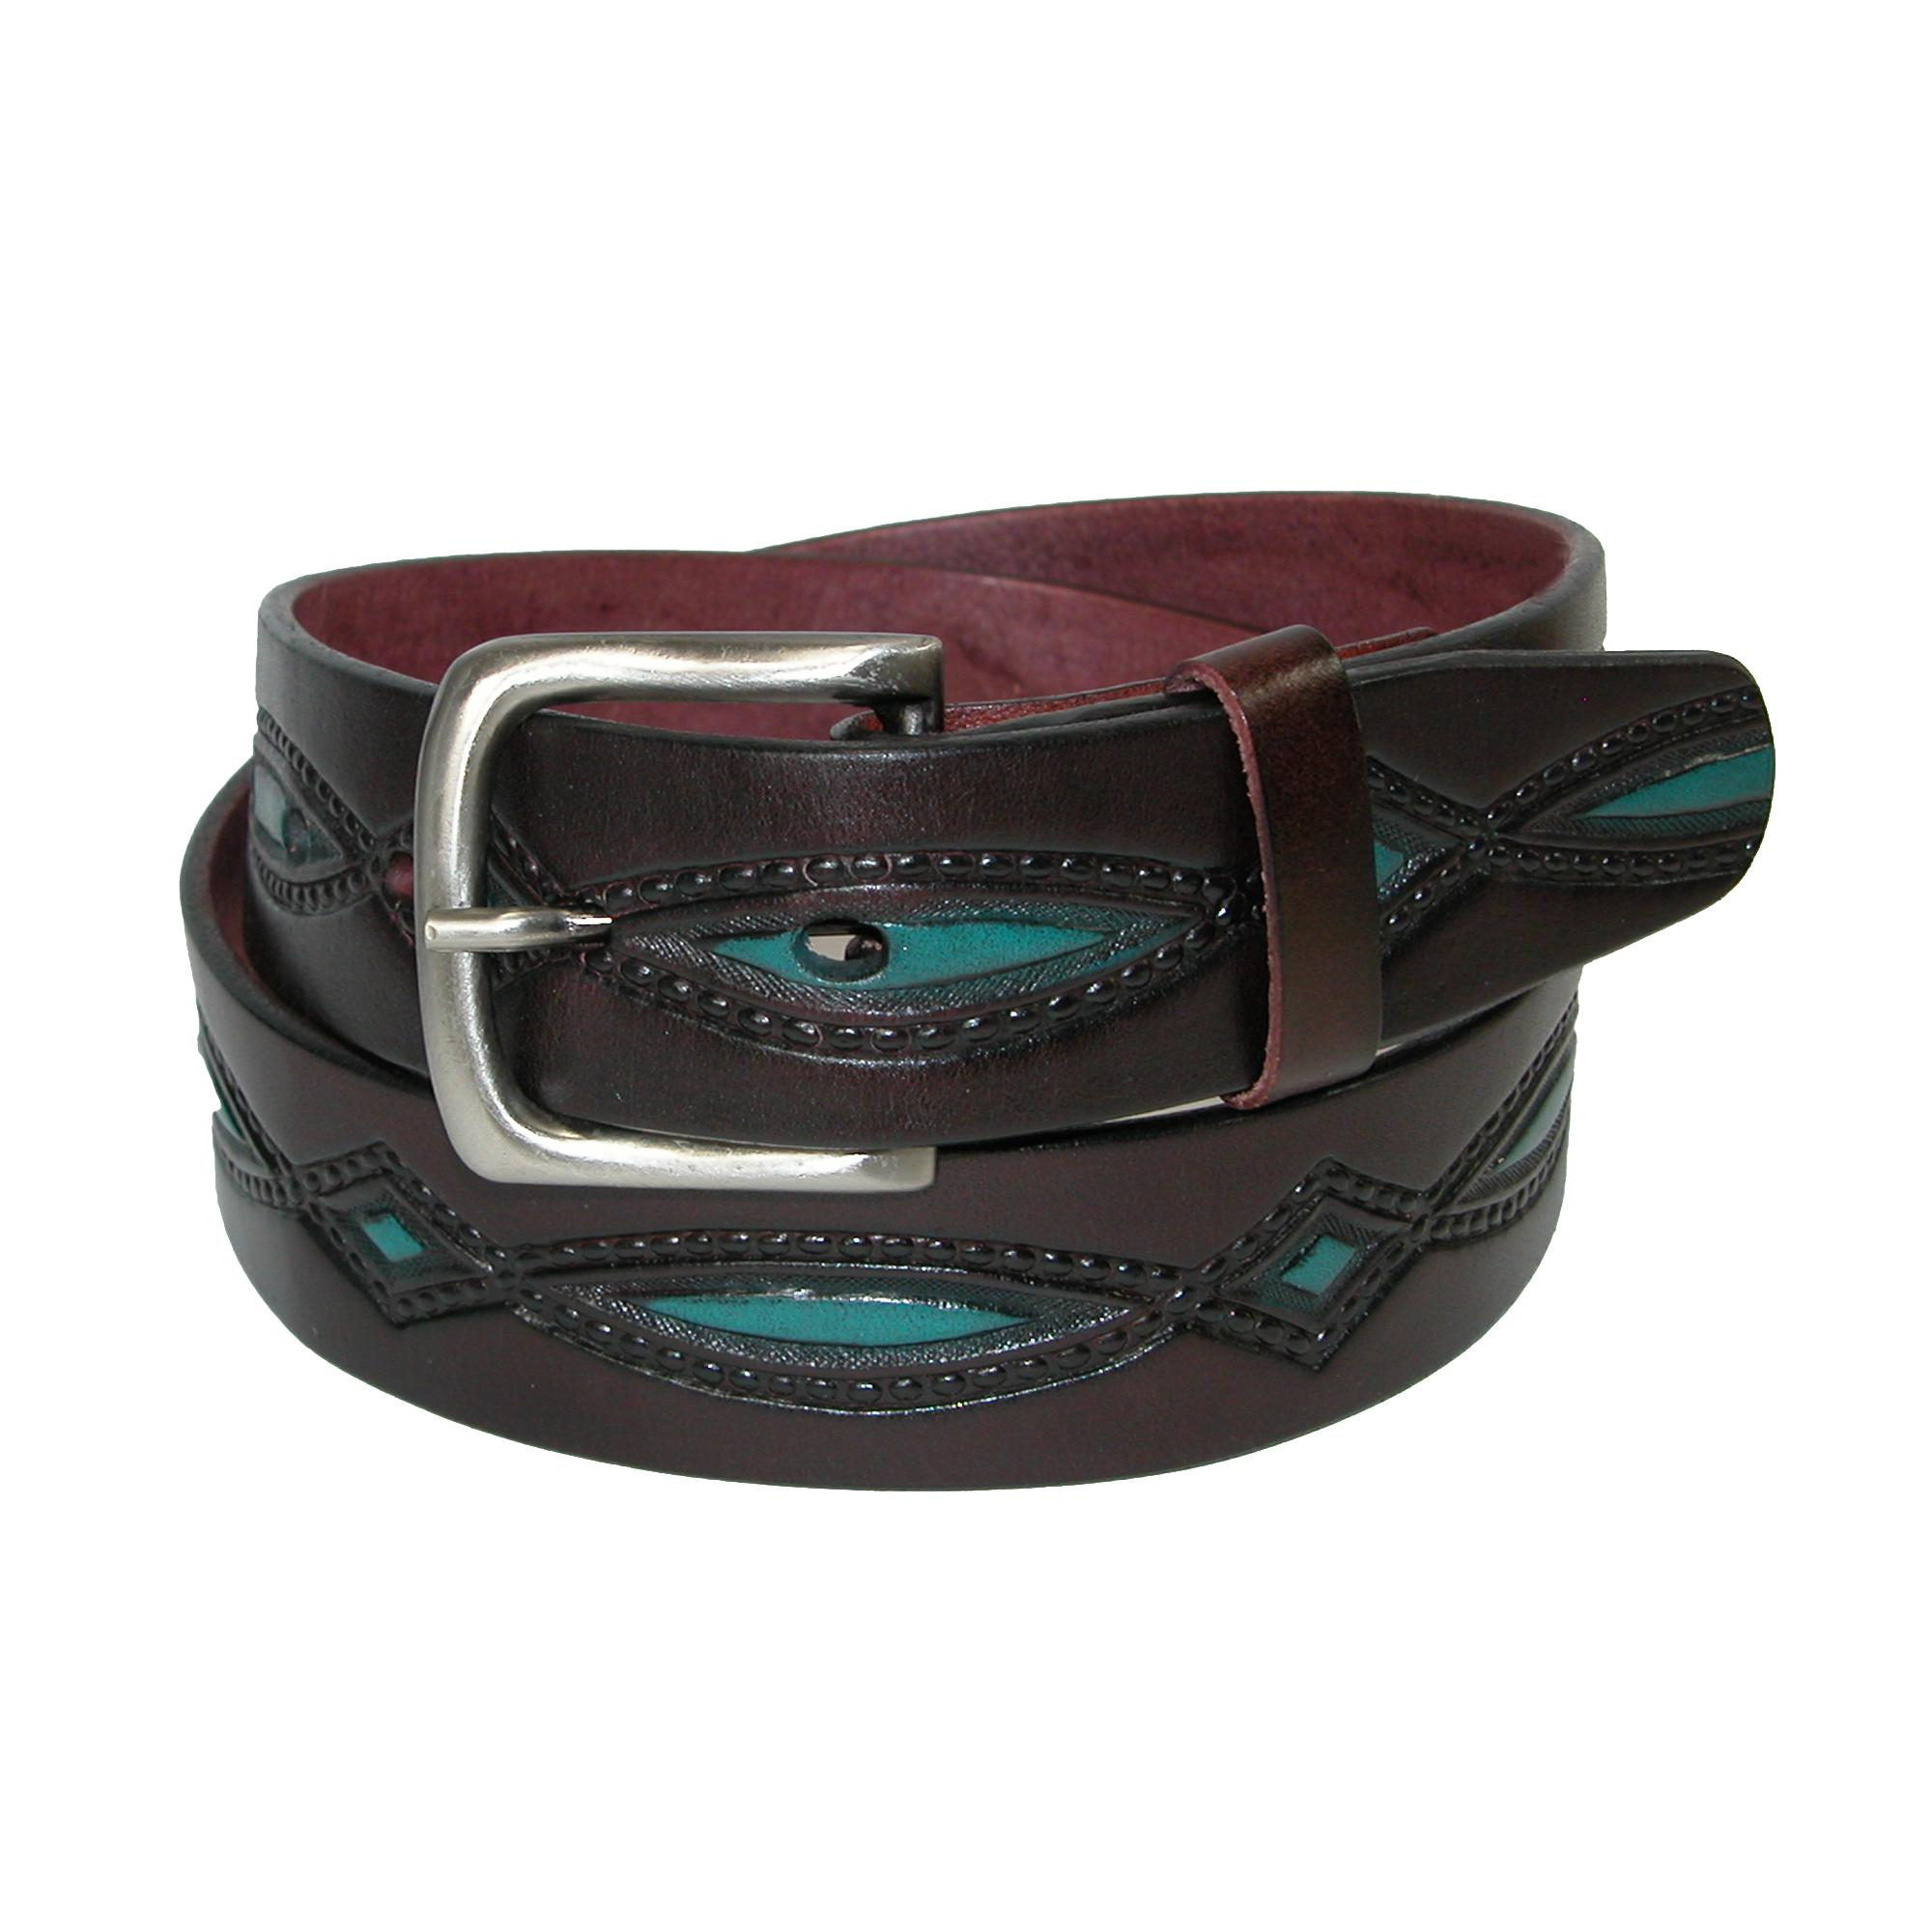 Ctm Mens Oil Tanned Leather Belt With Embossed Turquoise Accents